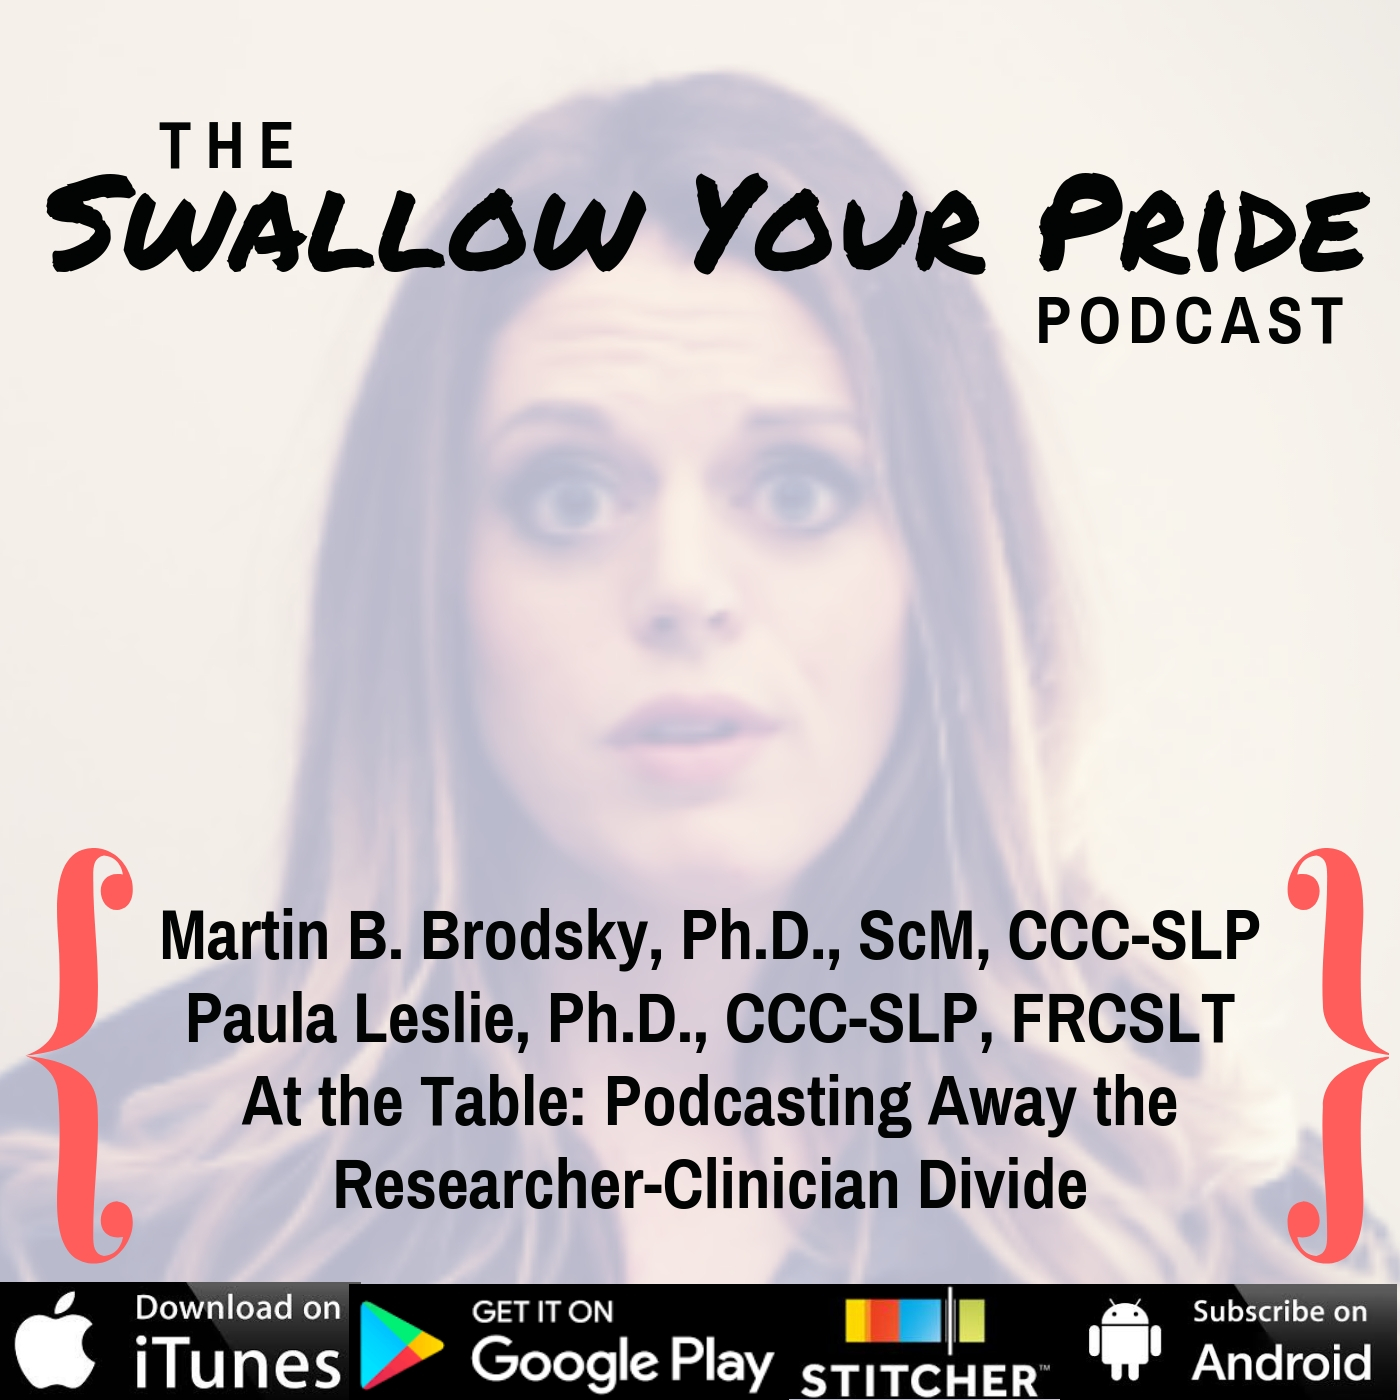 067 – Martin B. Brodsky, Ph.D., ScM, CCC-SLP and Paula Leslie, Ph.D., CCC-SLP, FRCSLT – At the Table: Blogging away the Researcher-Clinician Divide